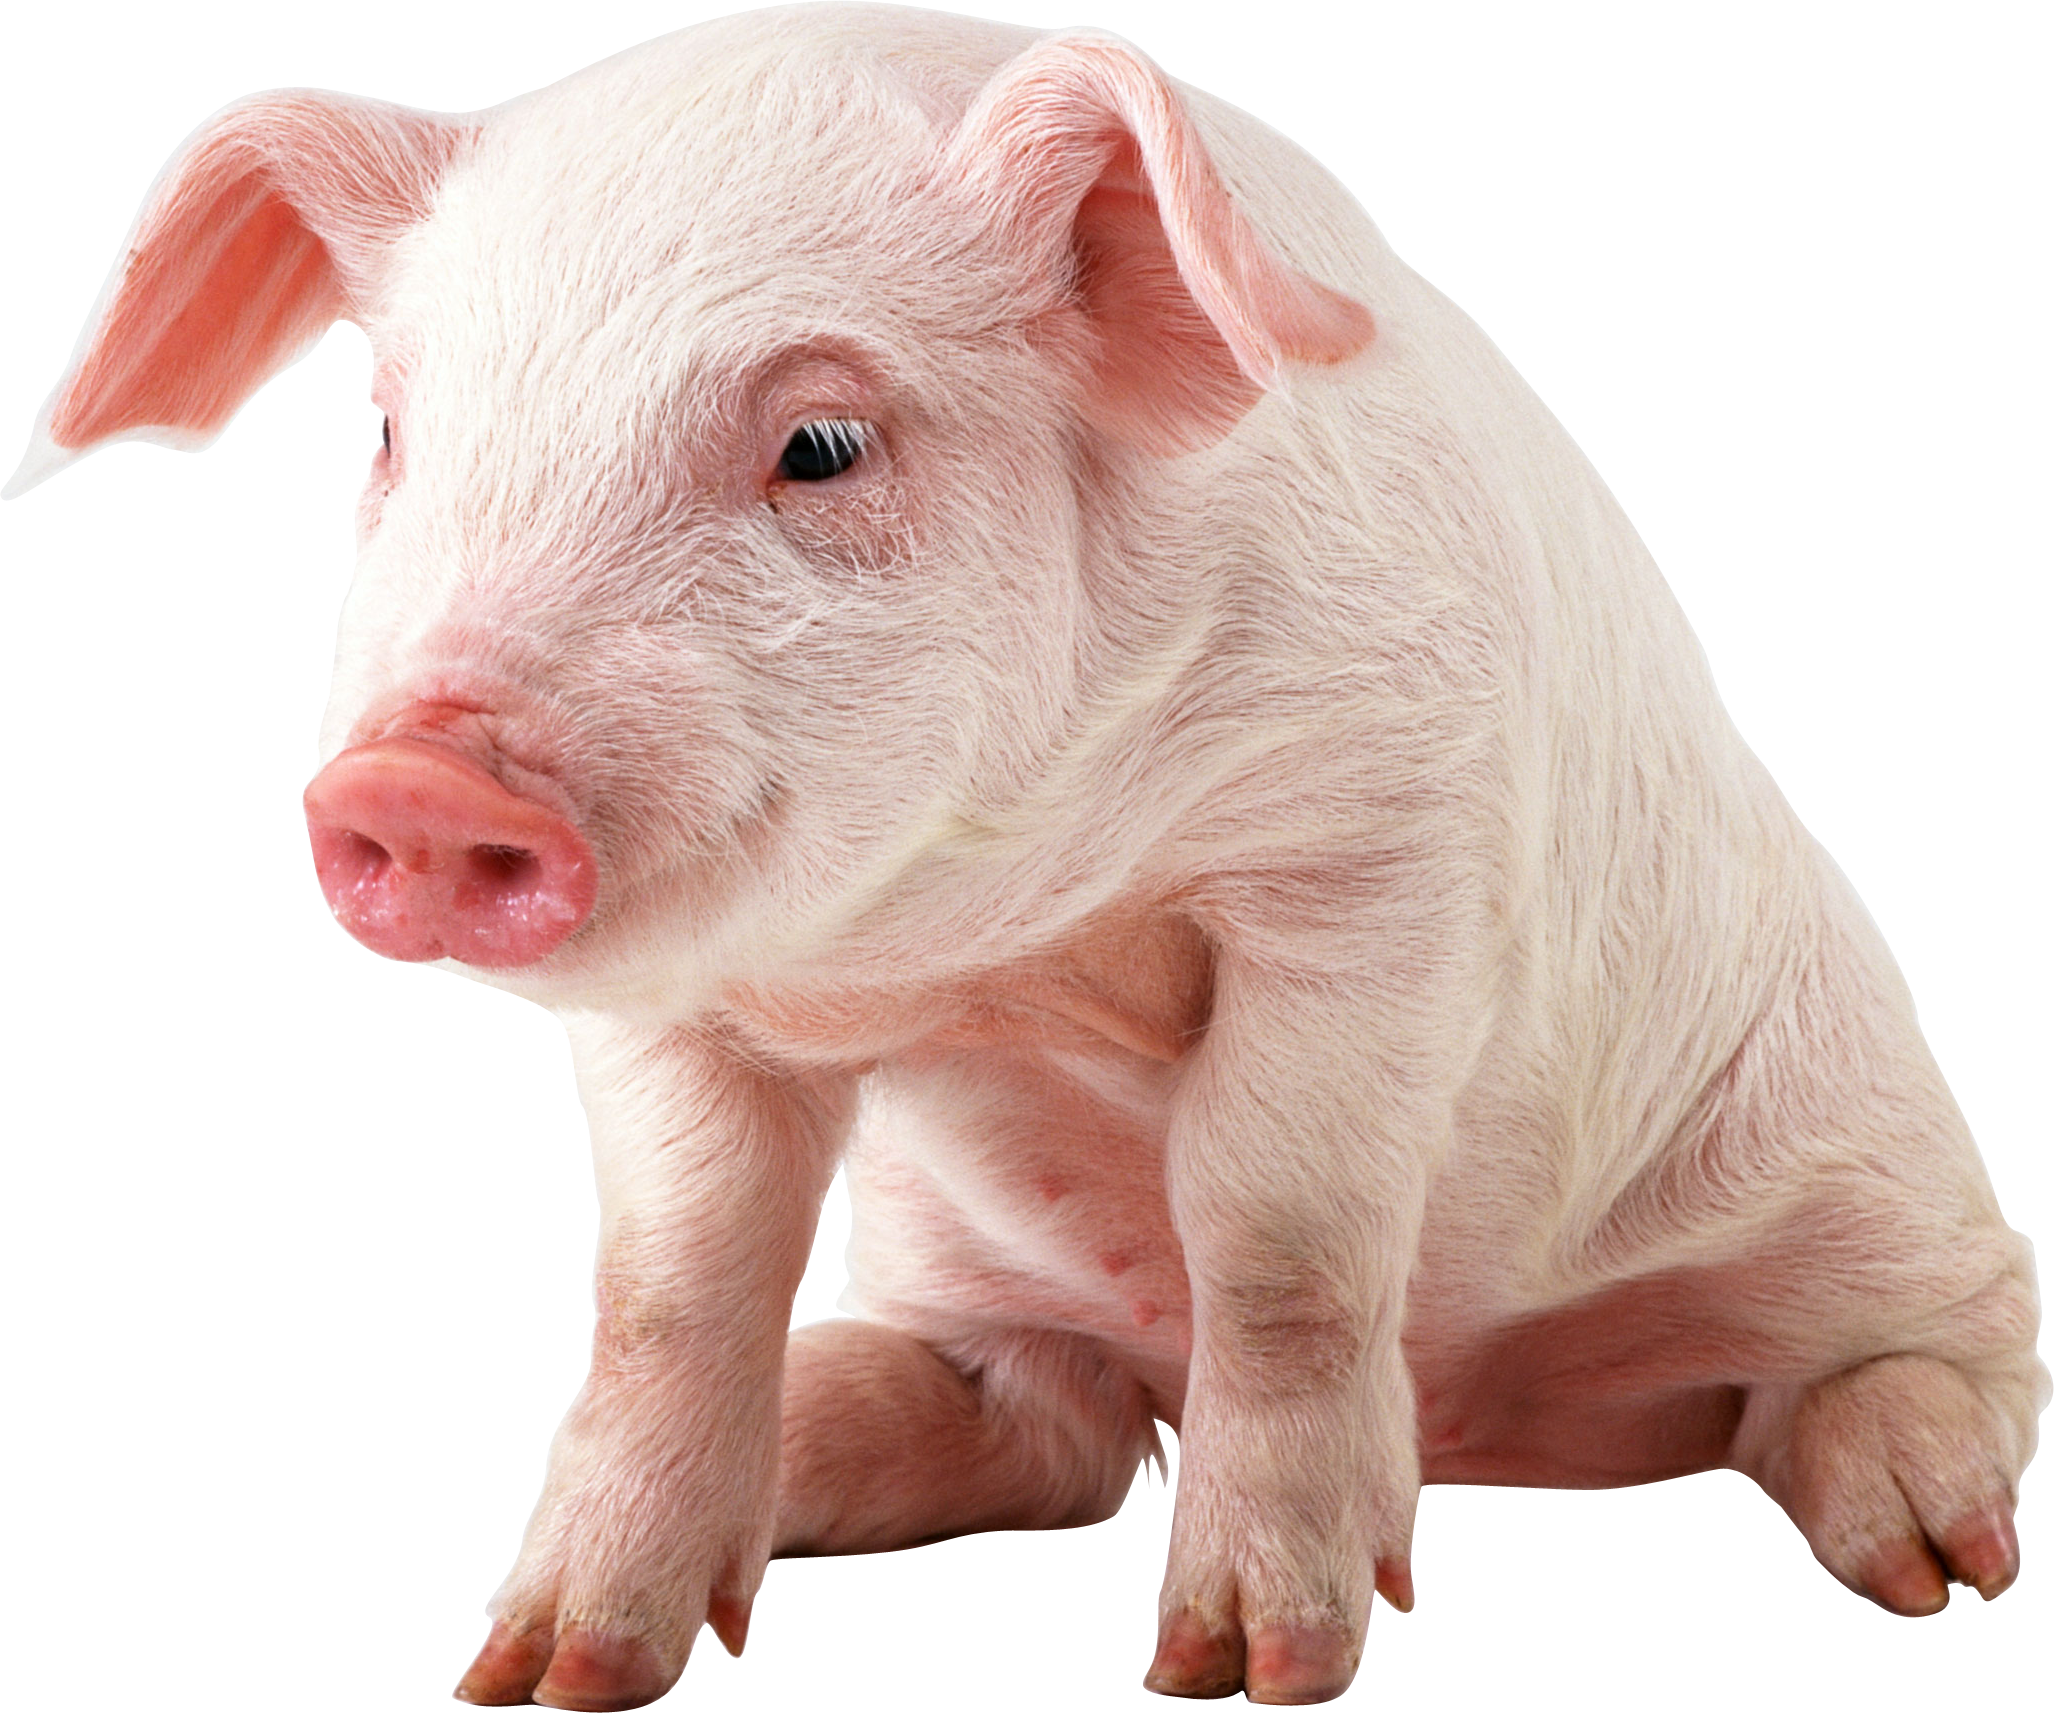 Pig PNG - 25883